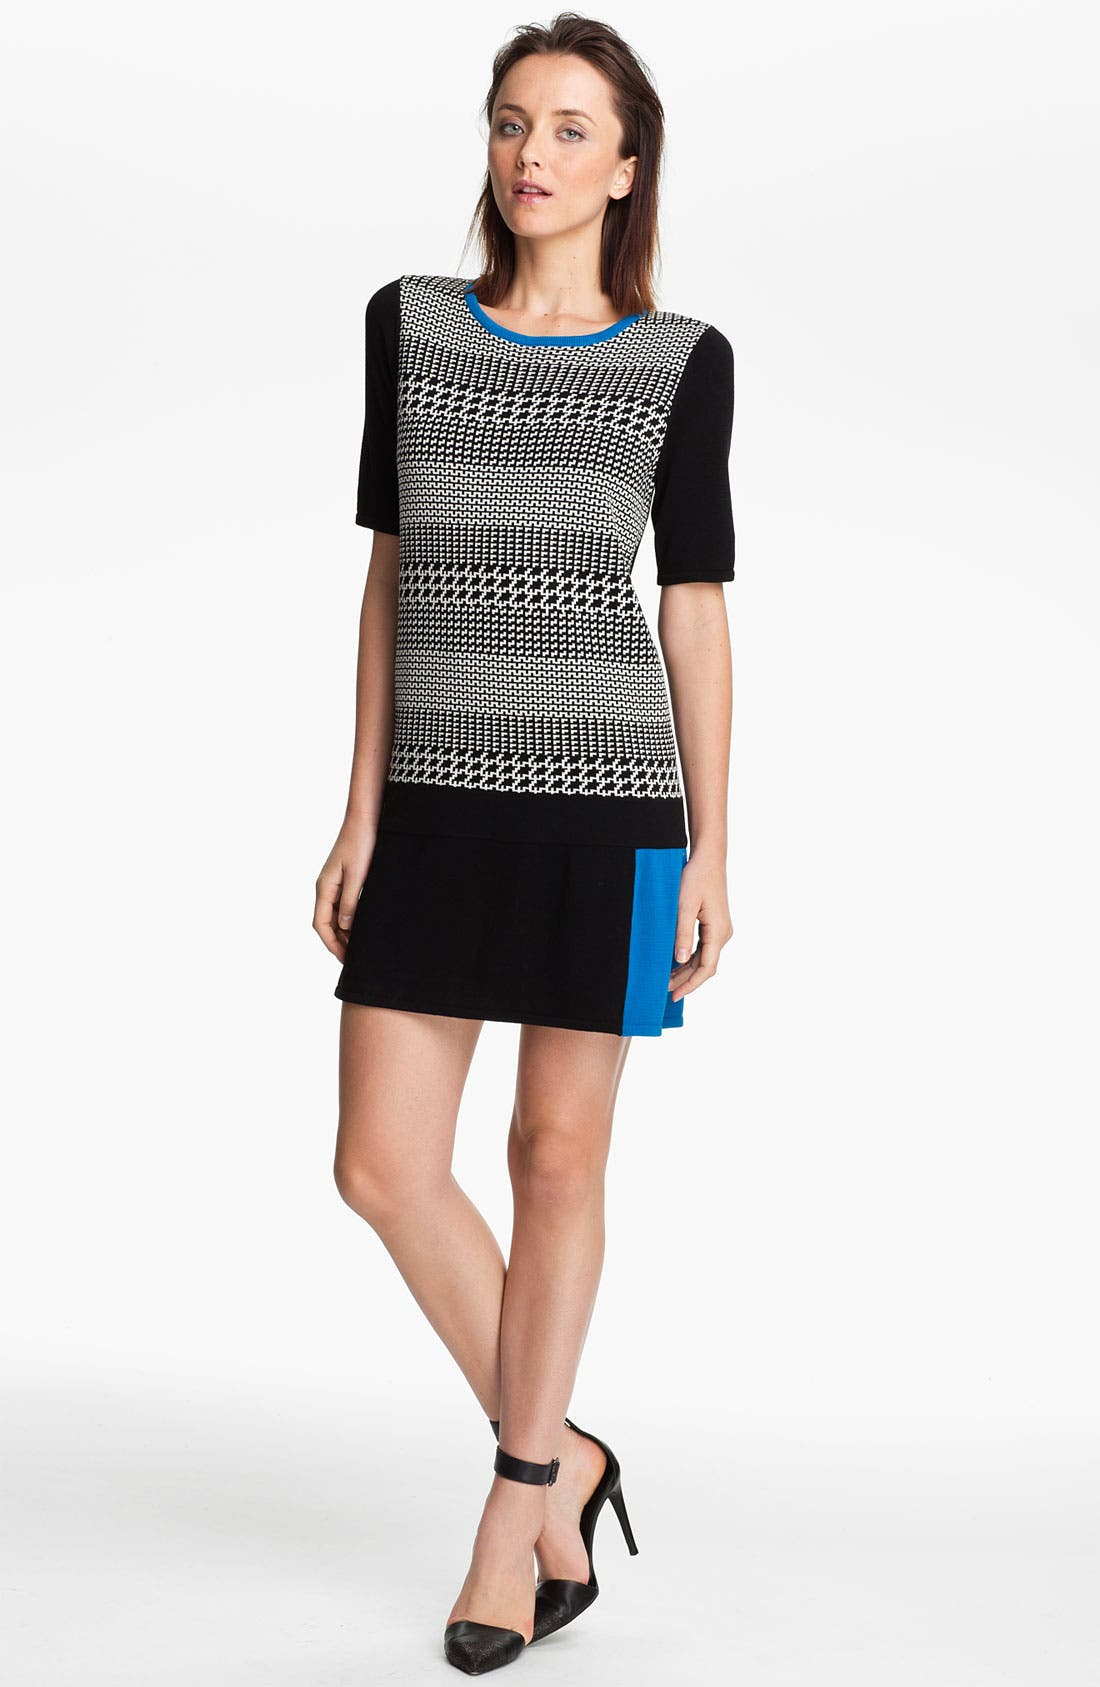 Alternate Image 1 Selected - Tibi Intarsia Knit Sweater Dress